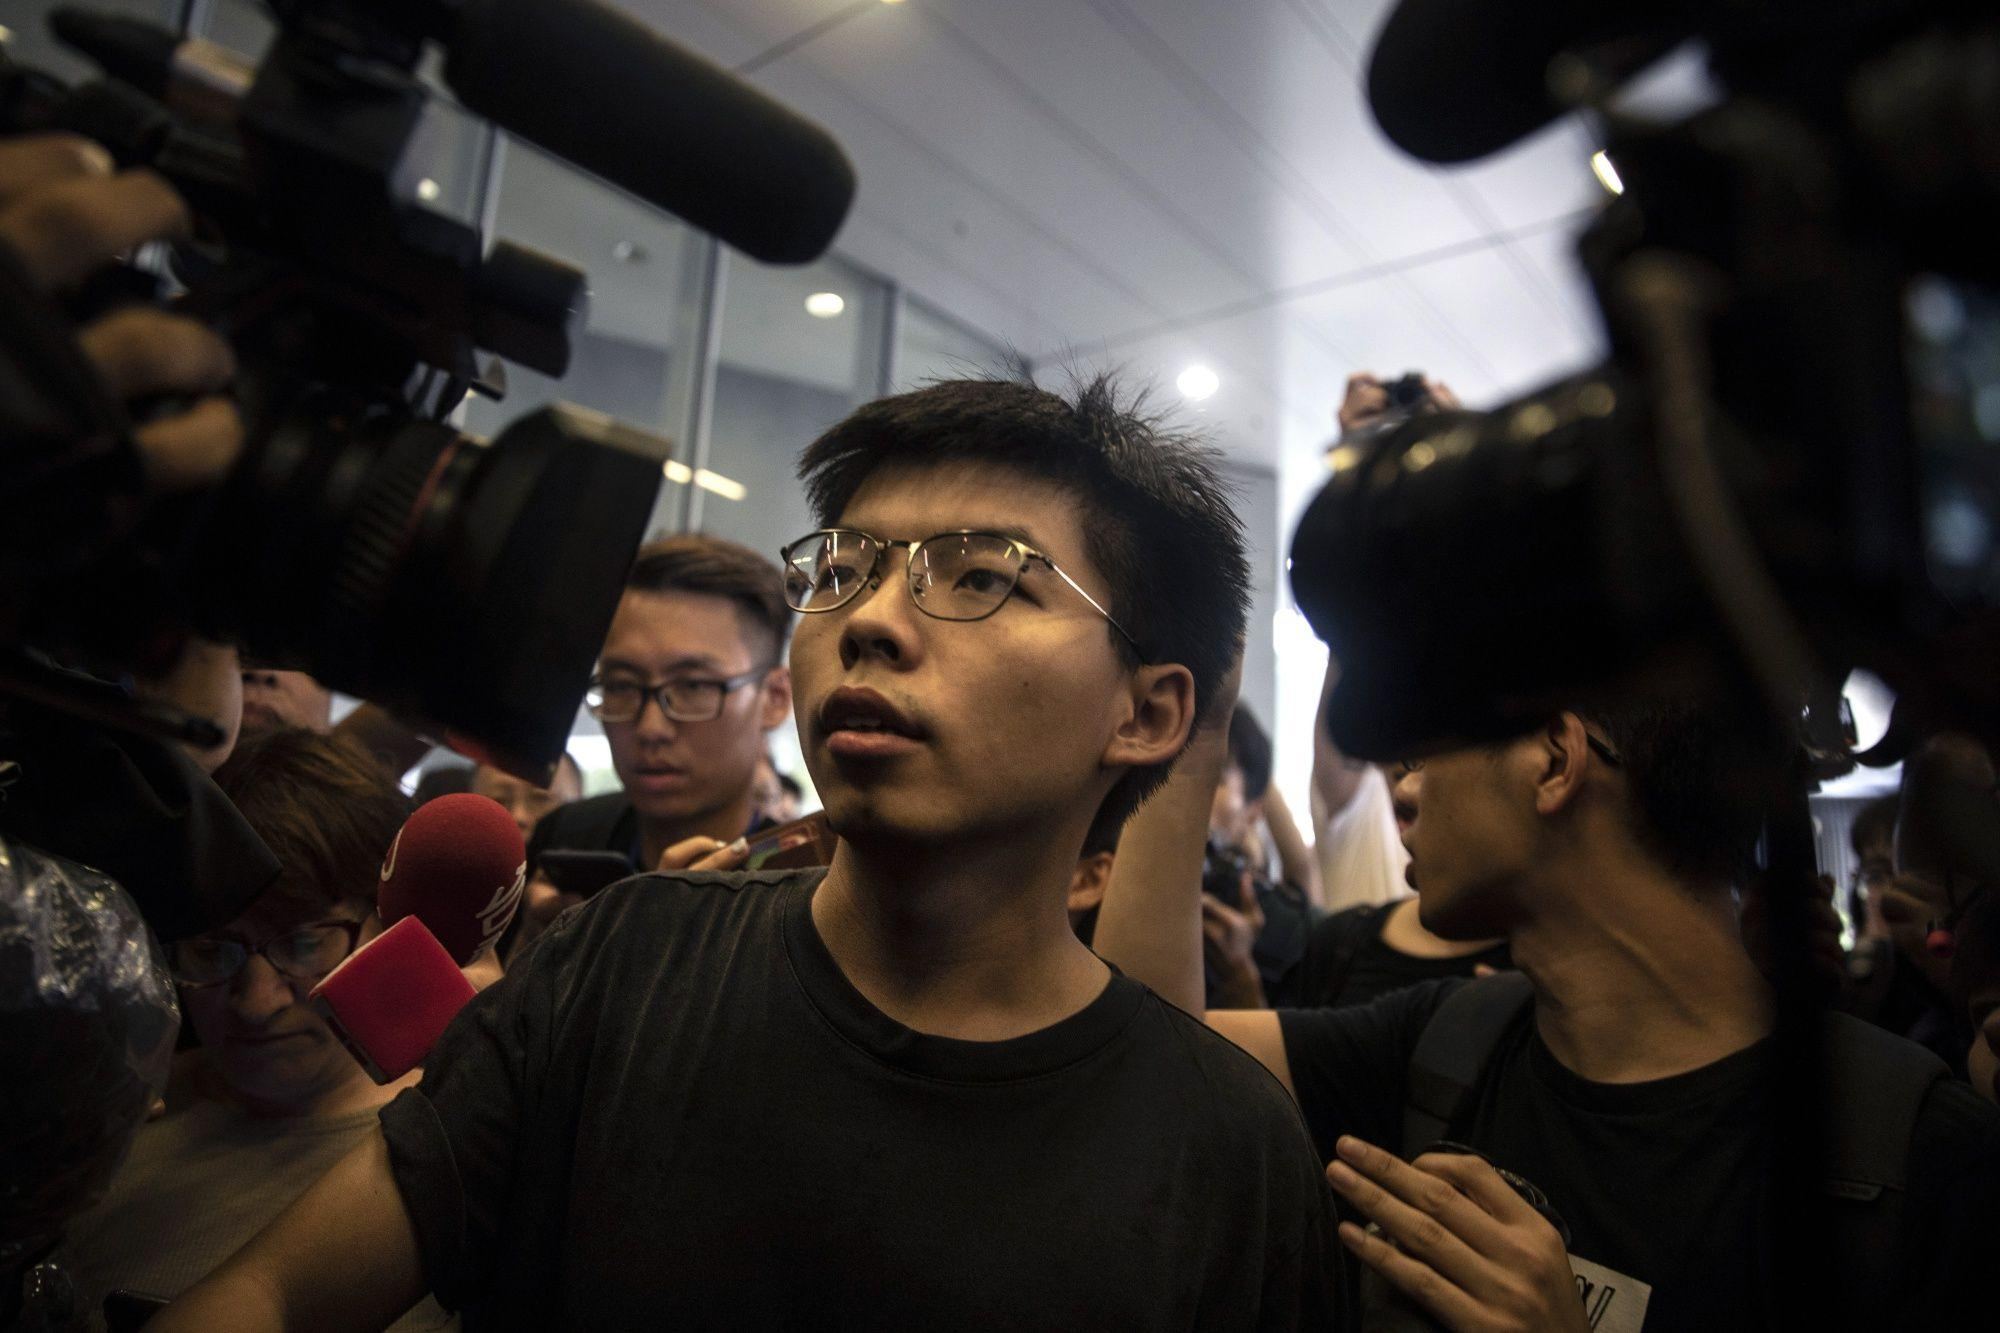 Hong Kong democracy activist Joshua Wong arrested ahead of weekend protests